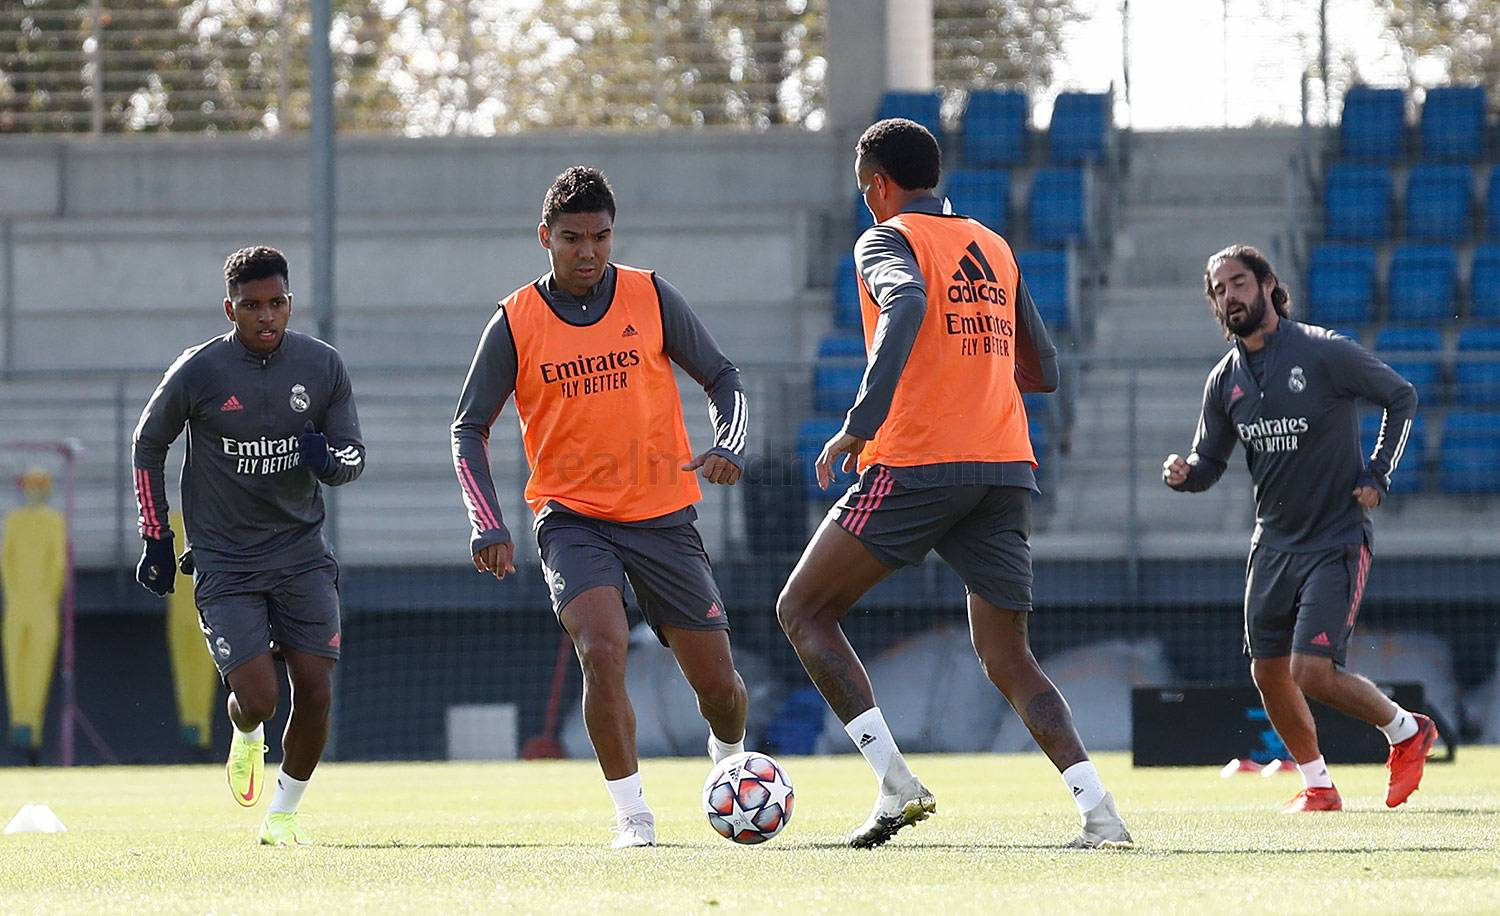 Real Madrid - Entrenamiento del Real Madrid  - 18-10-2020